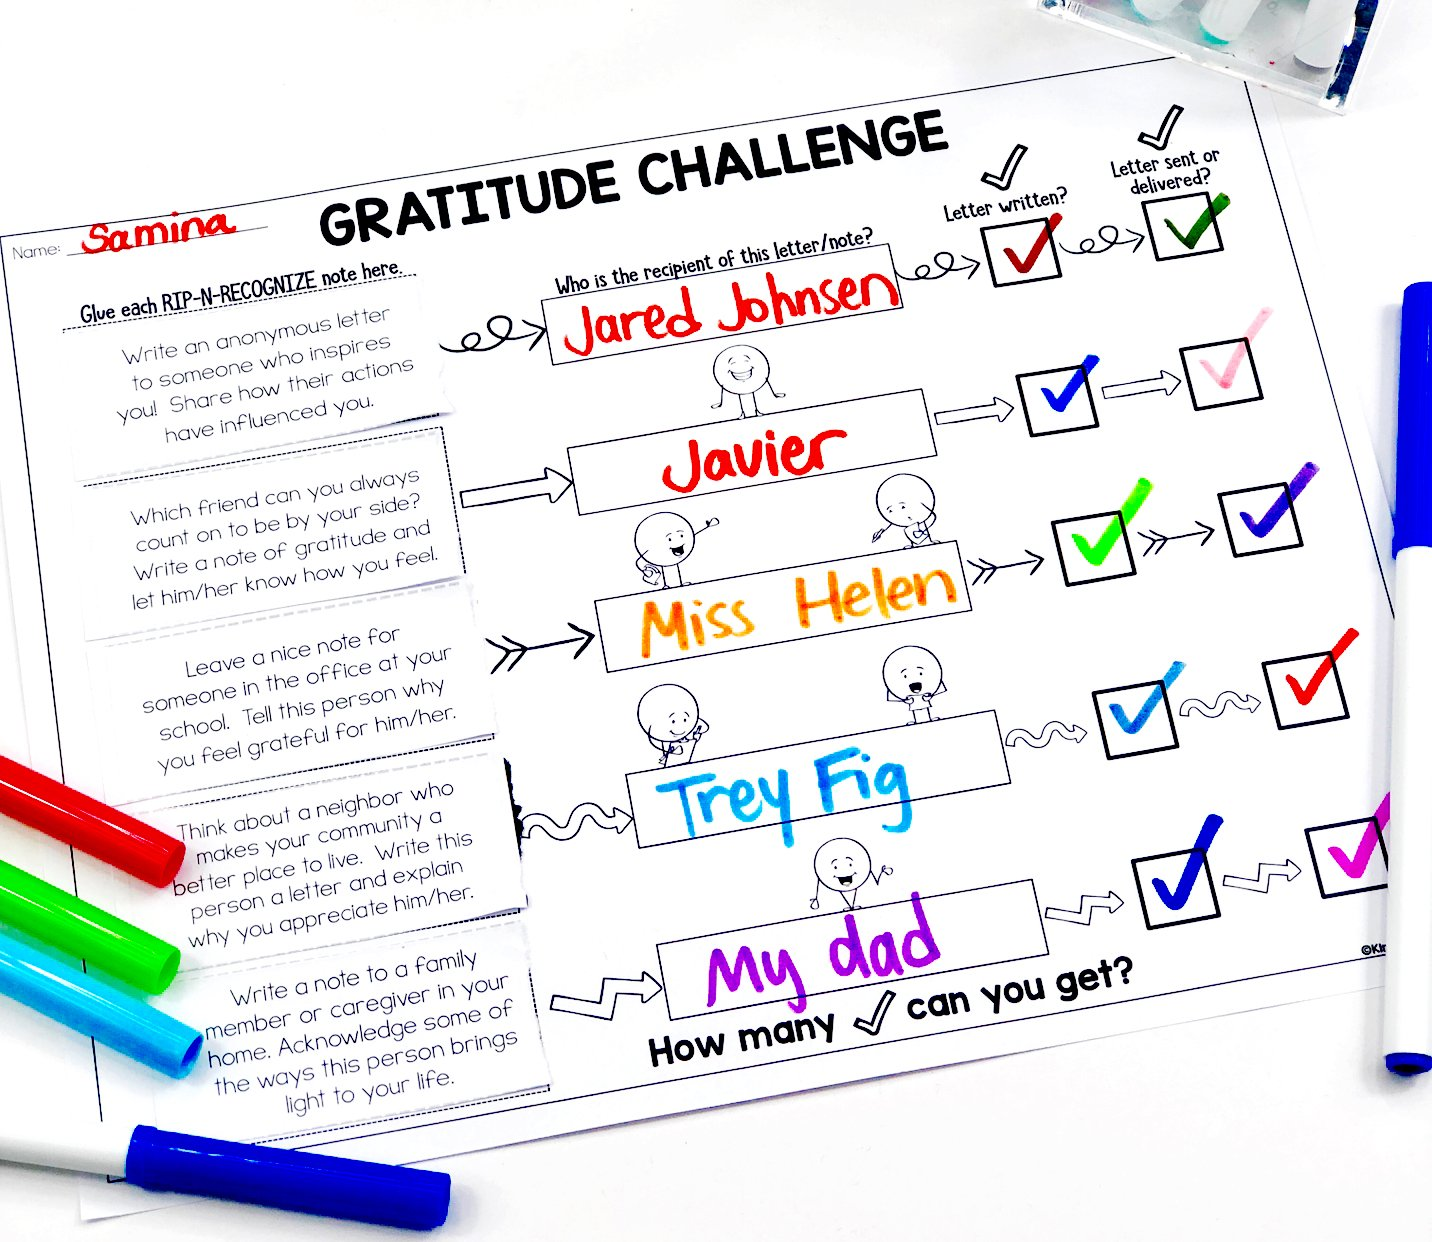 Gratitude Challenge: Rip-n-Recognize Gratitude Activities